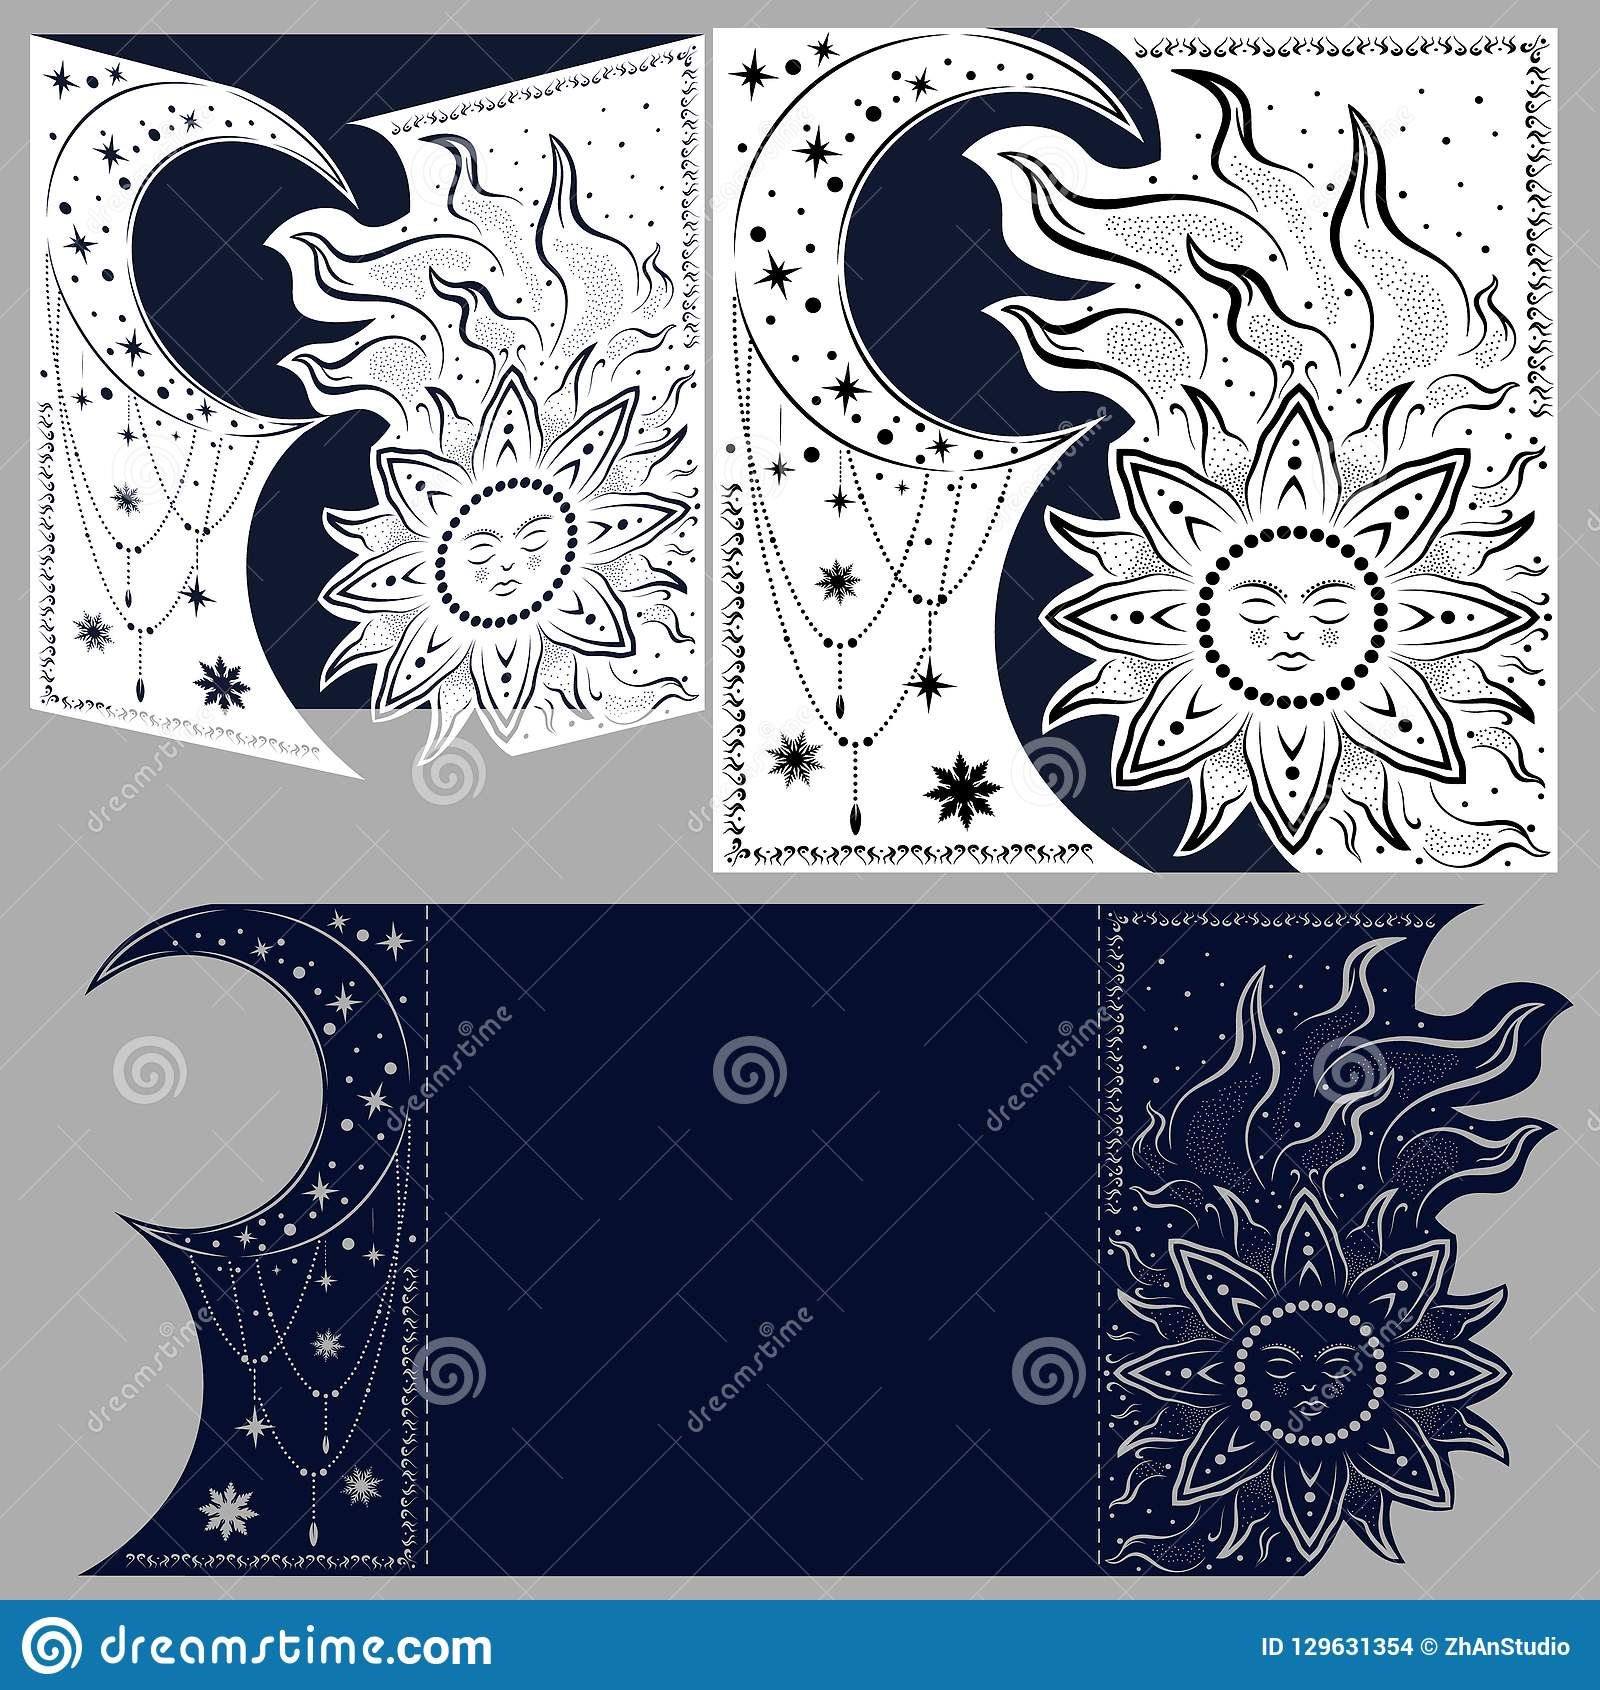 Layout congratulatory envelope with carved pattern. The template